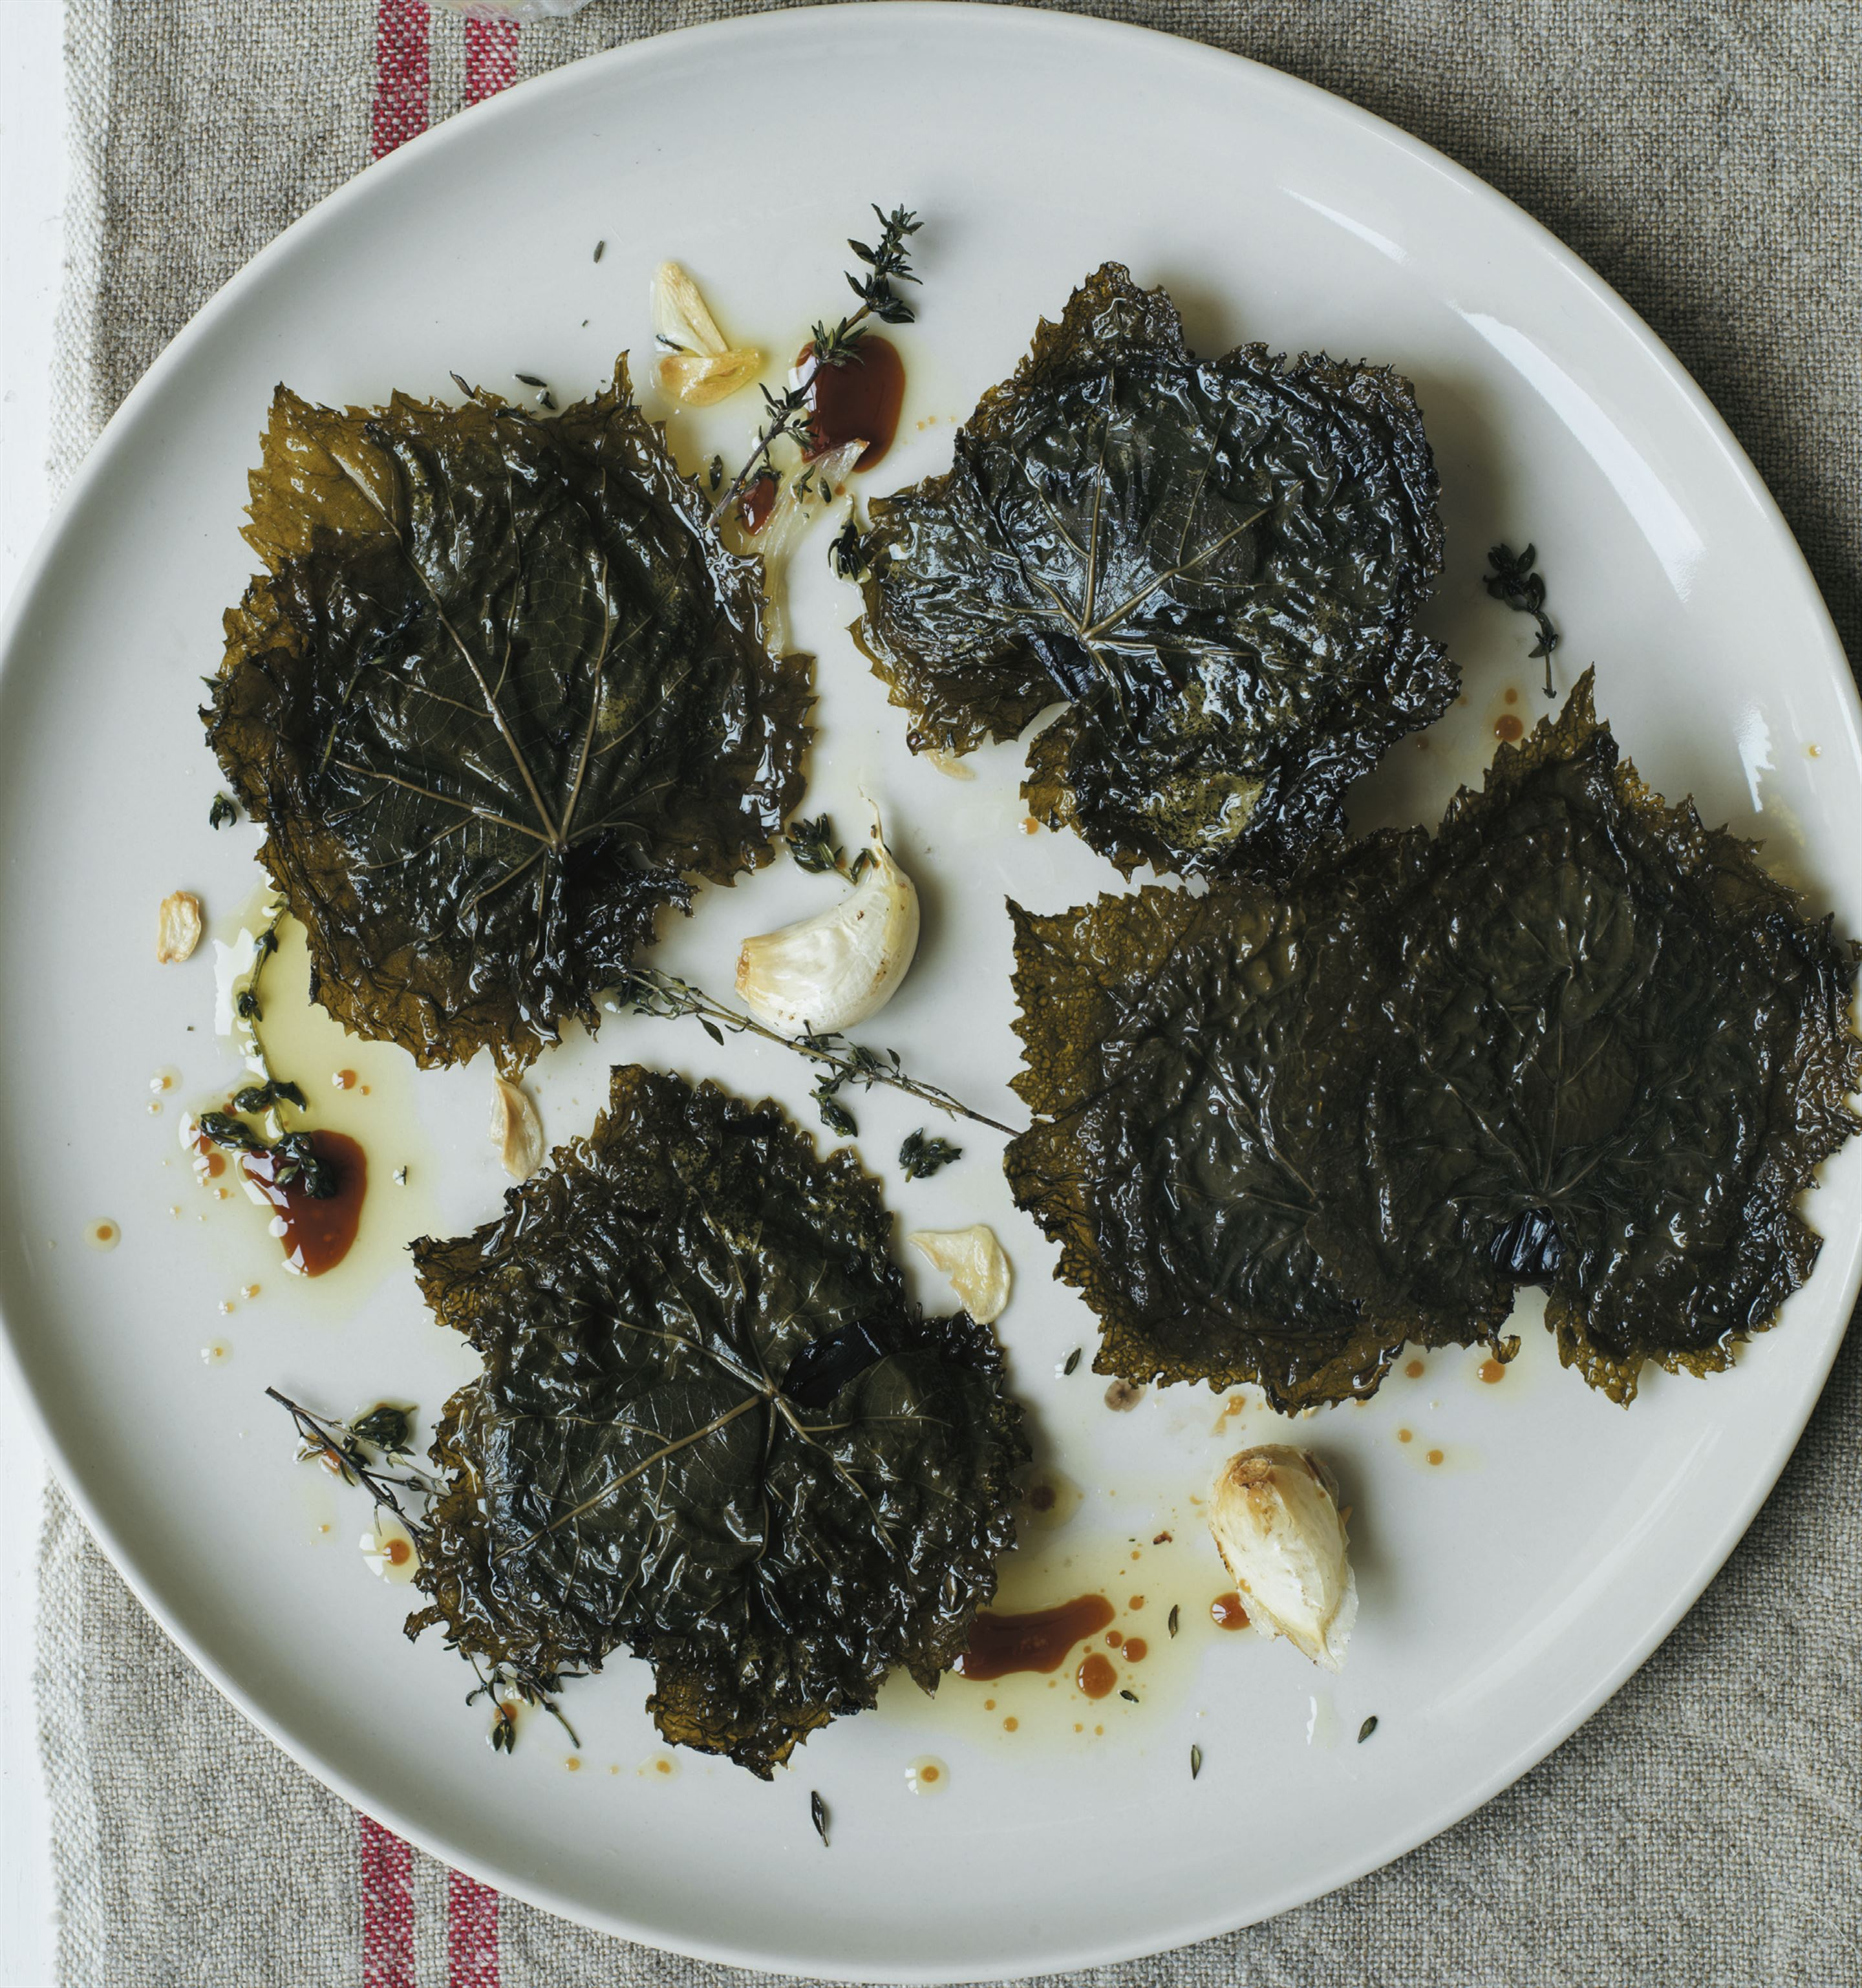 Portobello mushrooms baked between vine leaves